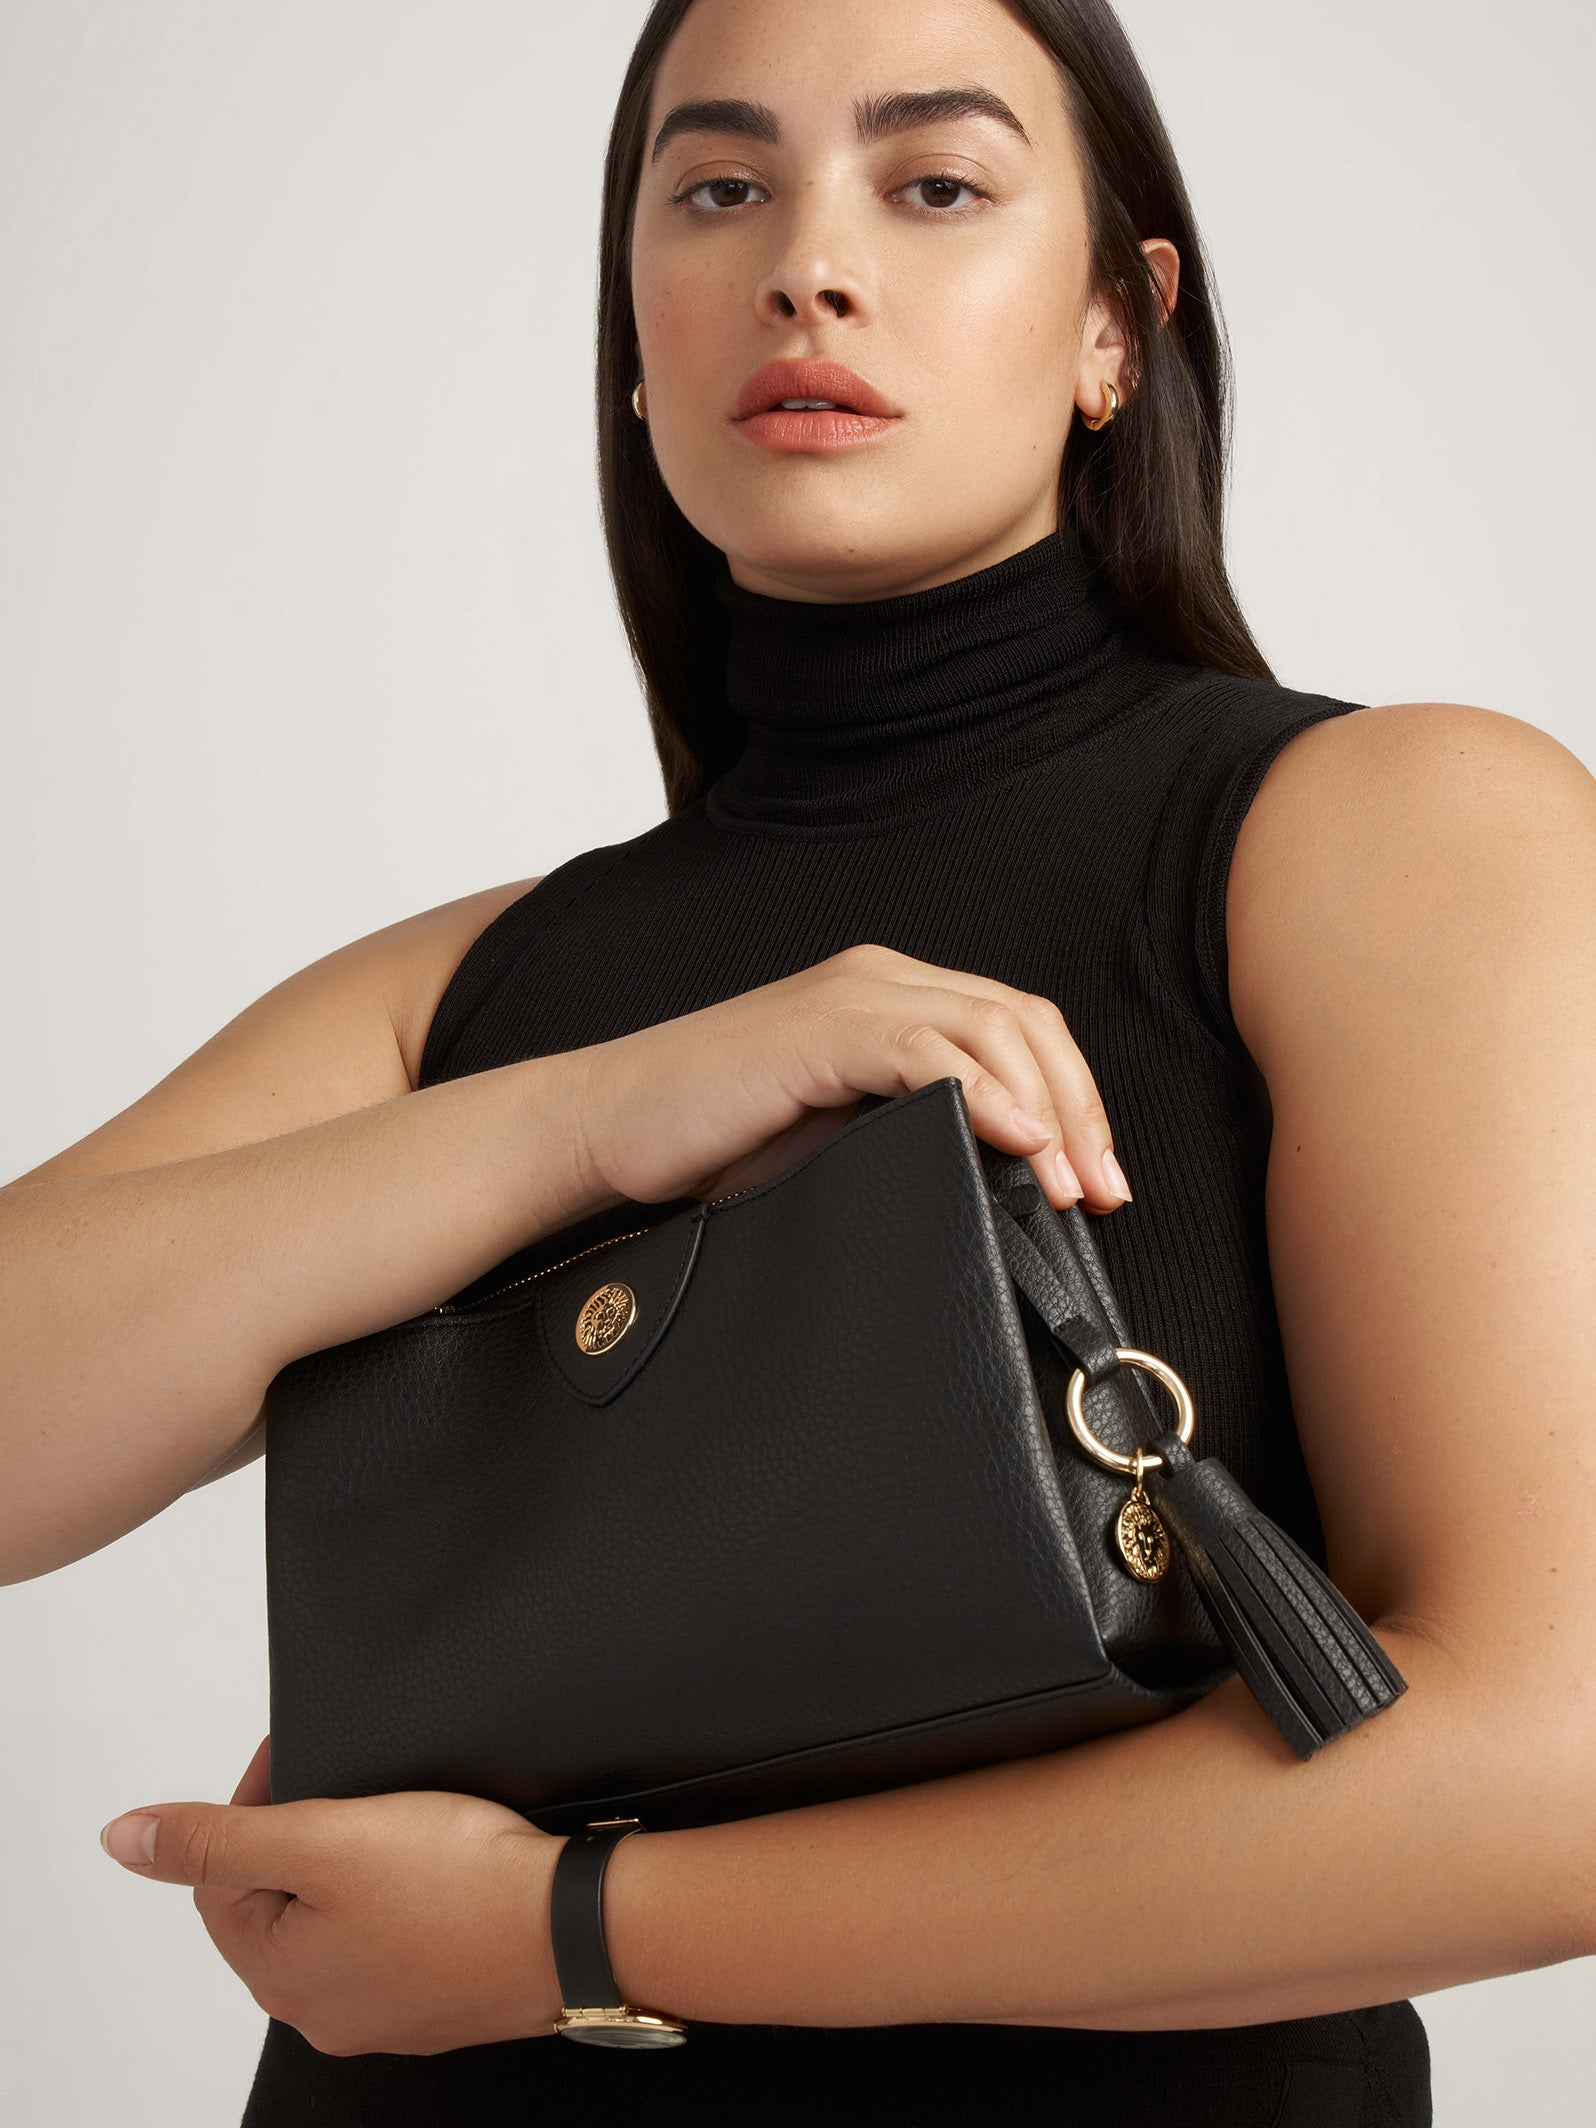 Anne Klein Handbag Model